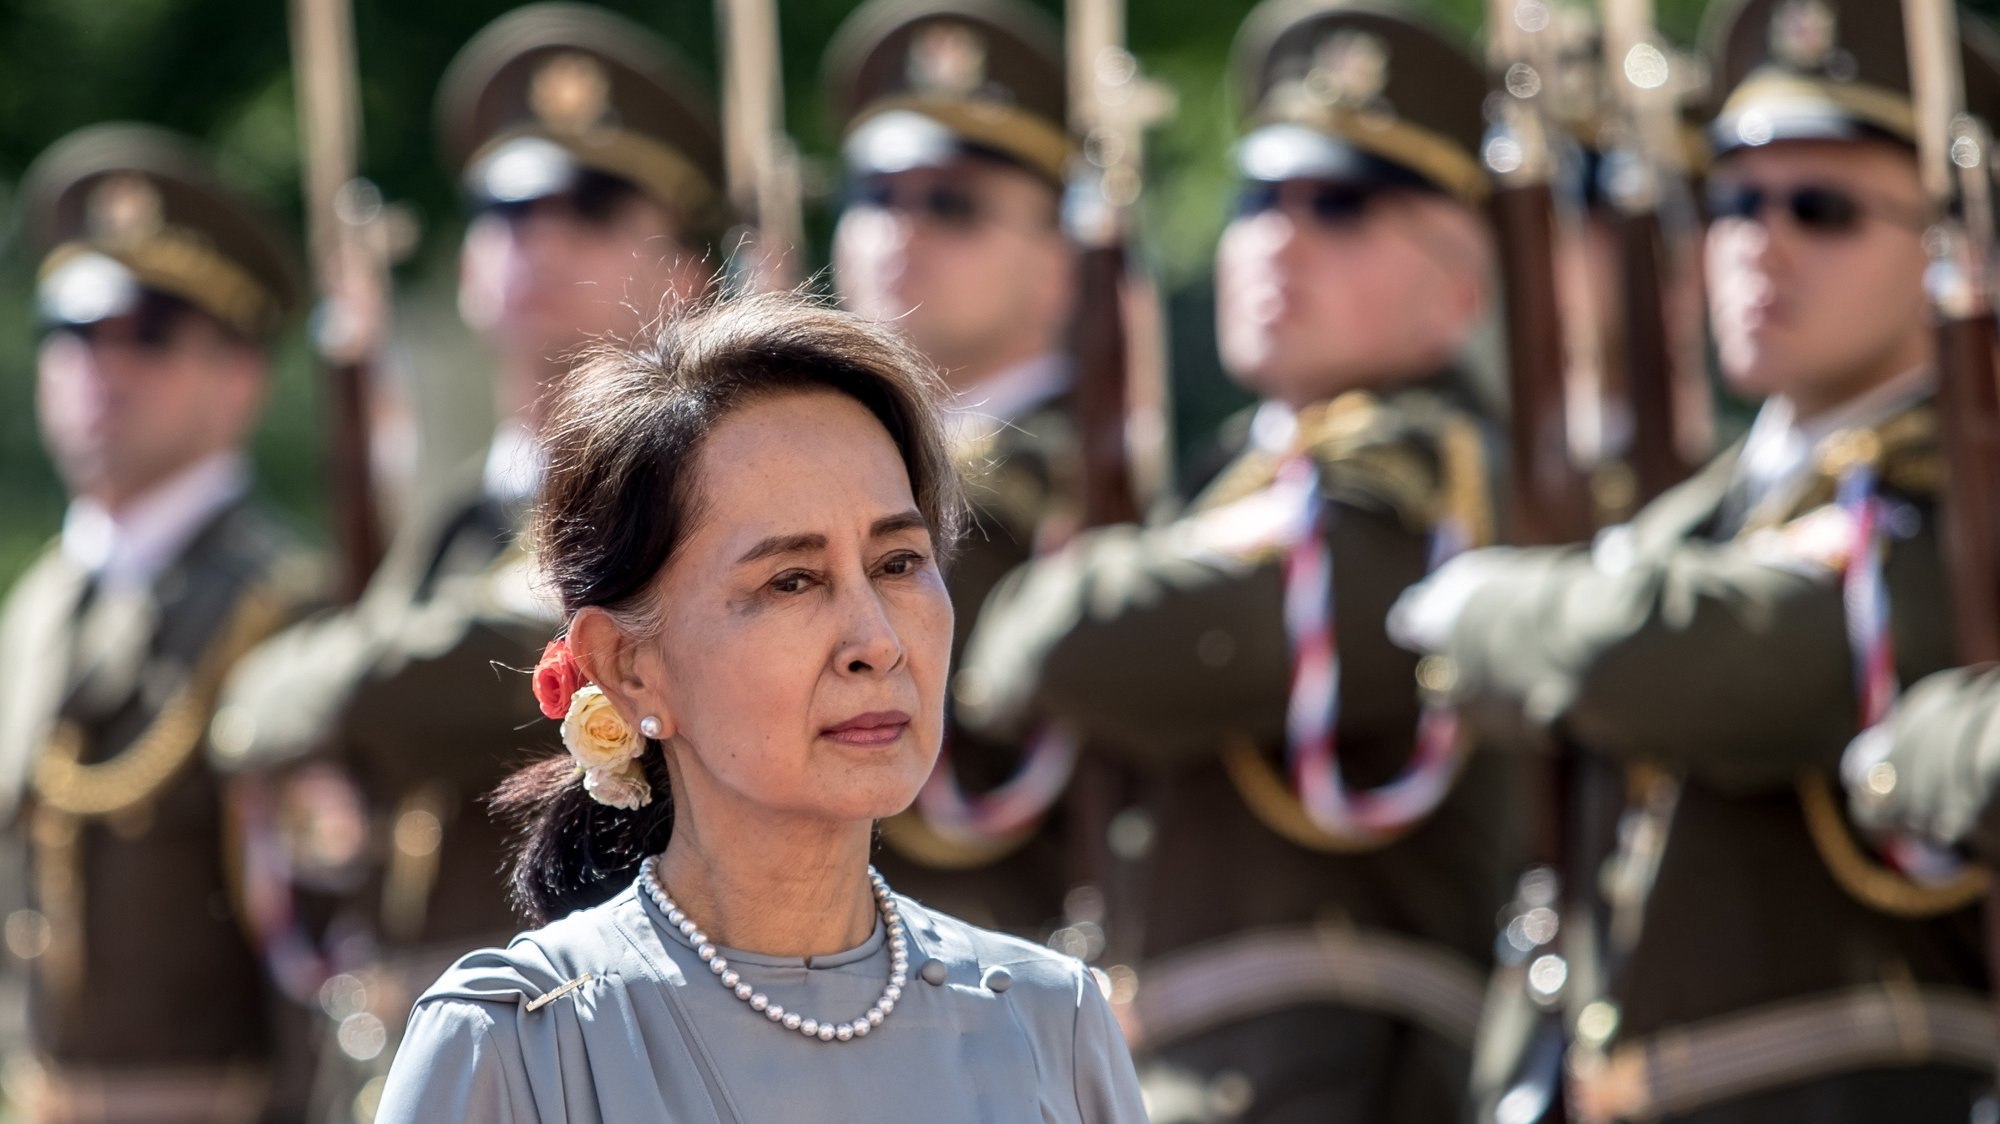 epa08978815 (FILE) - Myanmar's State Counselor Aung San Suu Kyi inspects a guard of honor during a welcome ceremony in Prague, Czech Republic, 03 June 2019 (reissued 01 February 2021). According to media reports Myanmar's State Counselor Aung San Suu Kyi and Myanmar president Win Myint were arrested by the military in a raid on 01 February amidst reports of a coup.  EPA/MARTIN DIVISEK *** Local Caption *** 56487053